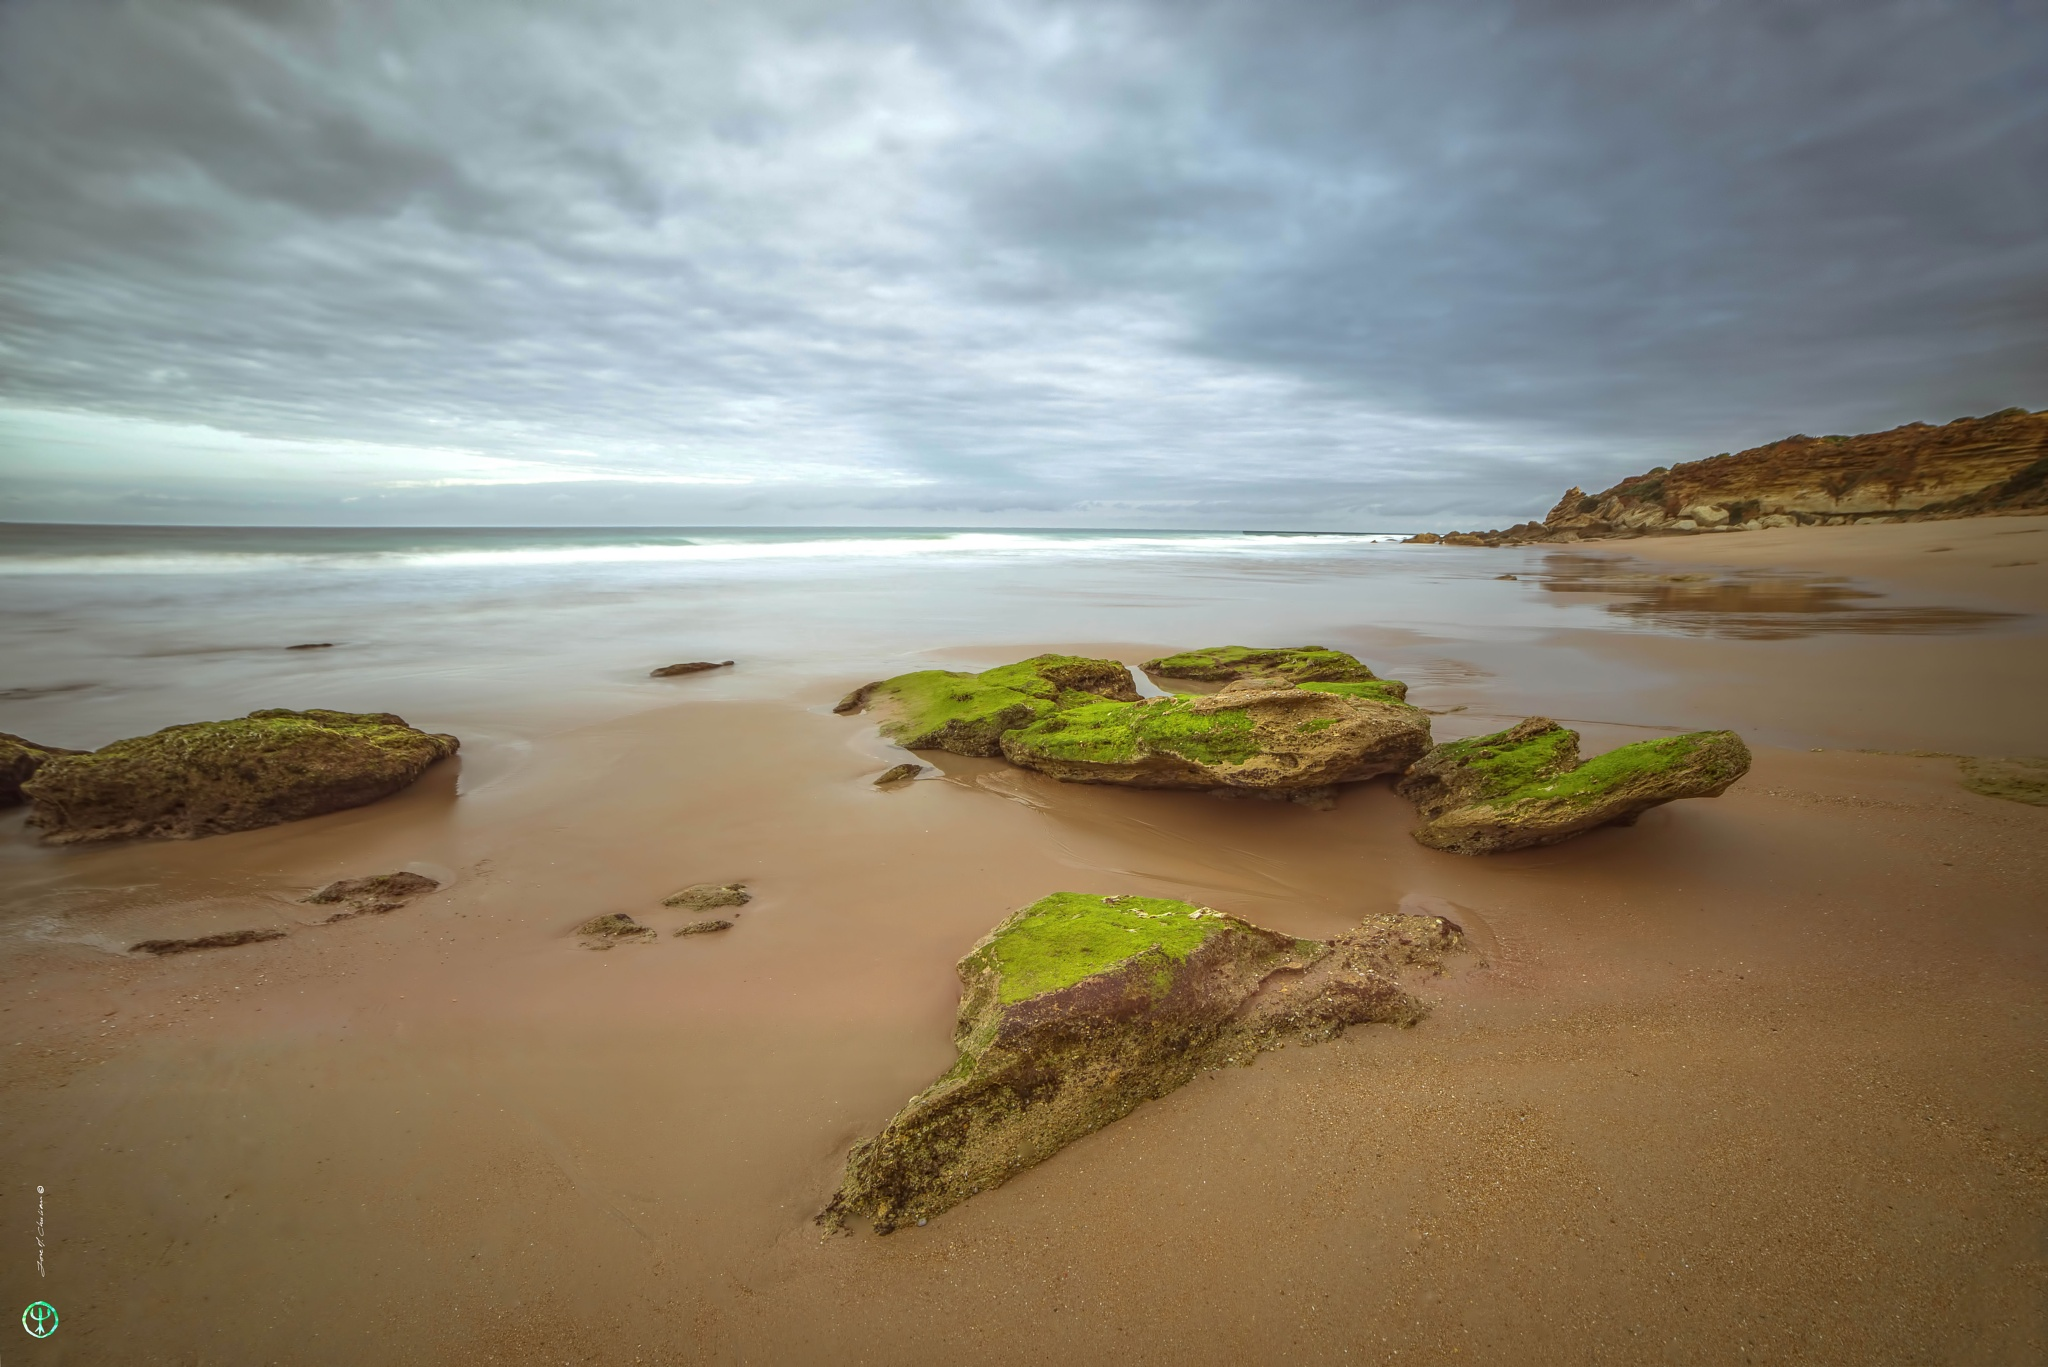 remote beaches overlooking by jmchuliancesar